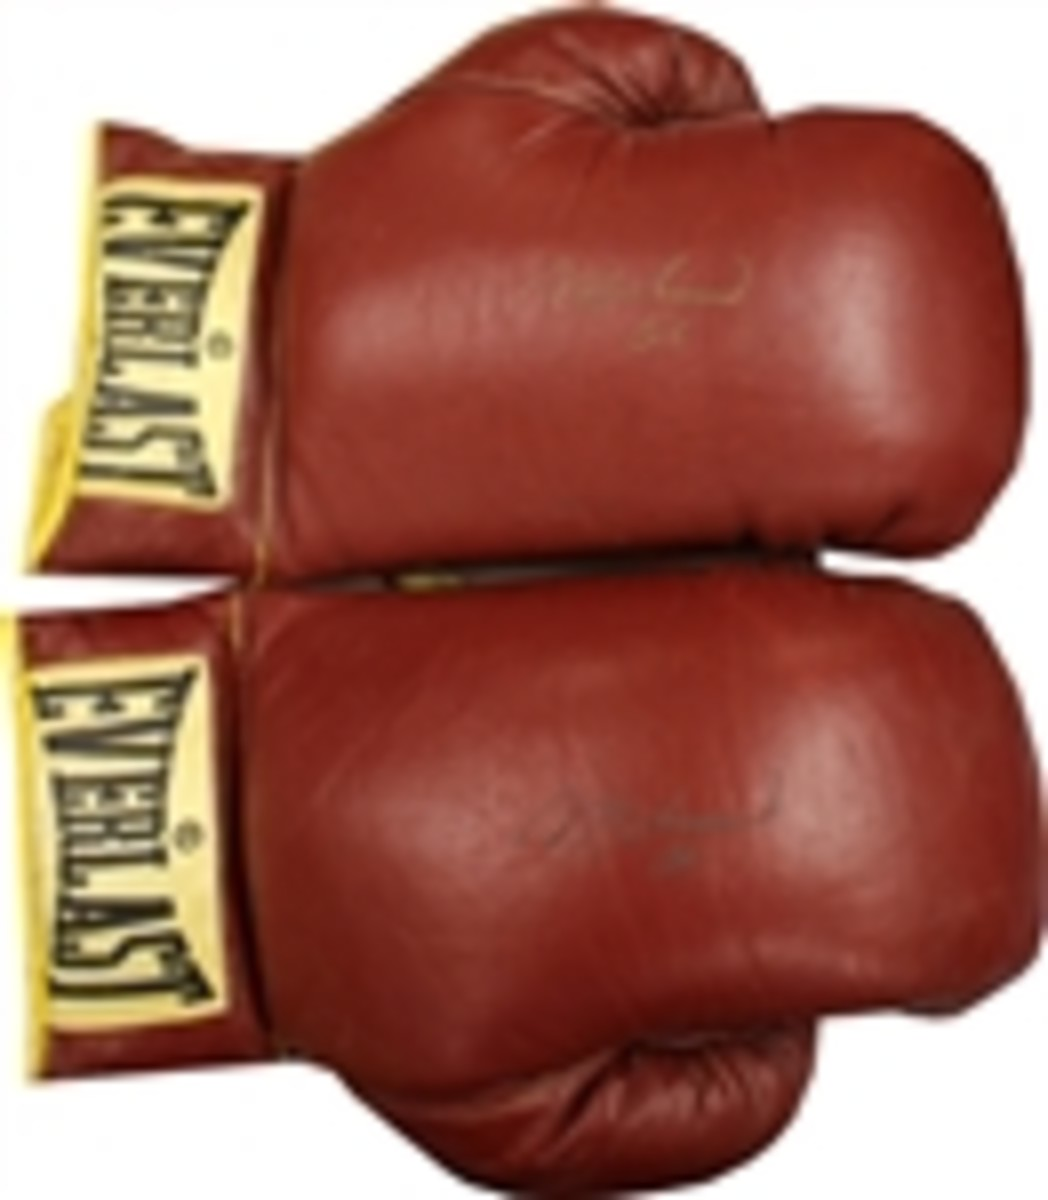 Muhammad Ali Everlast Gloves Both Signed